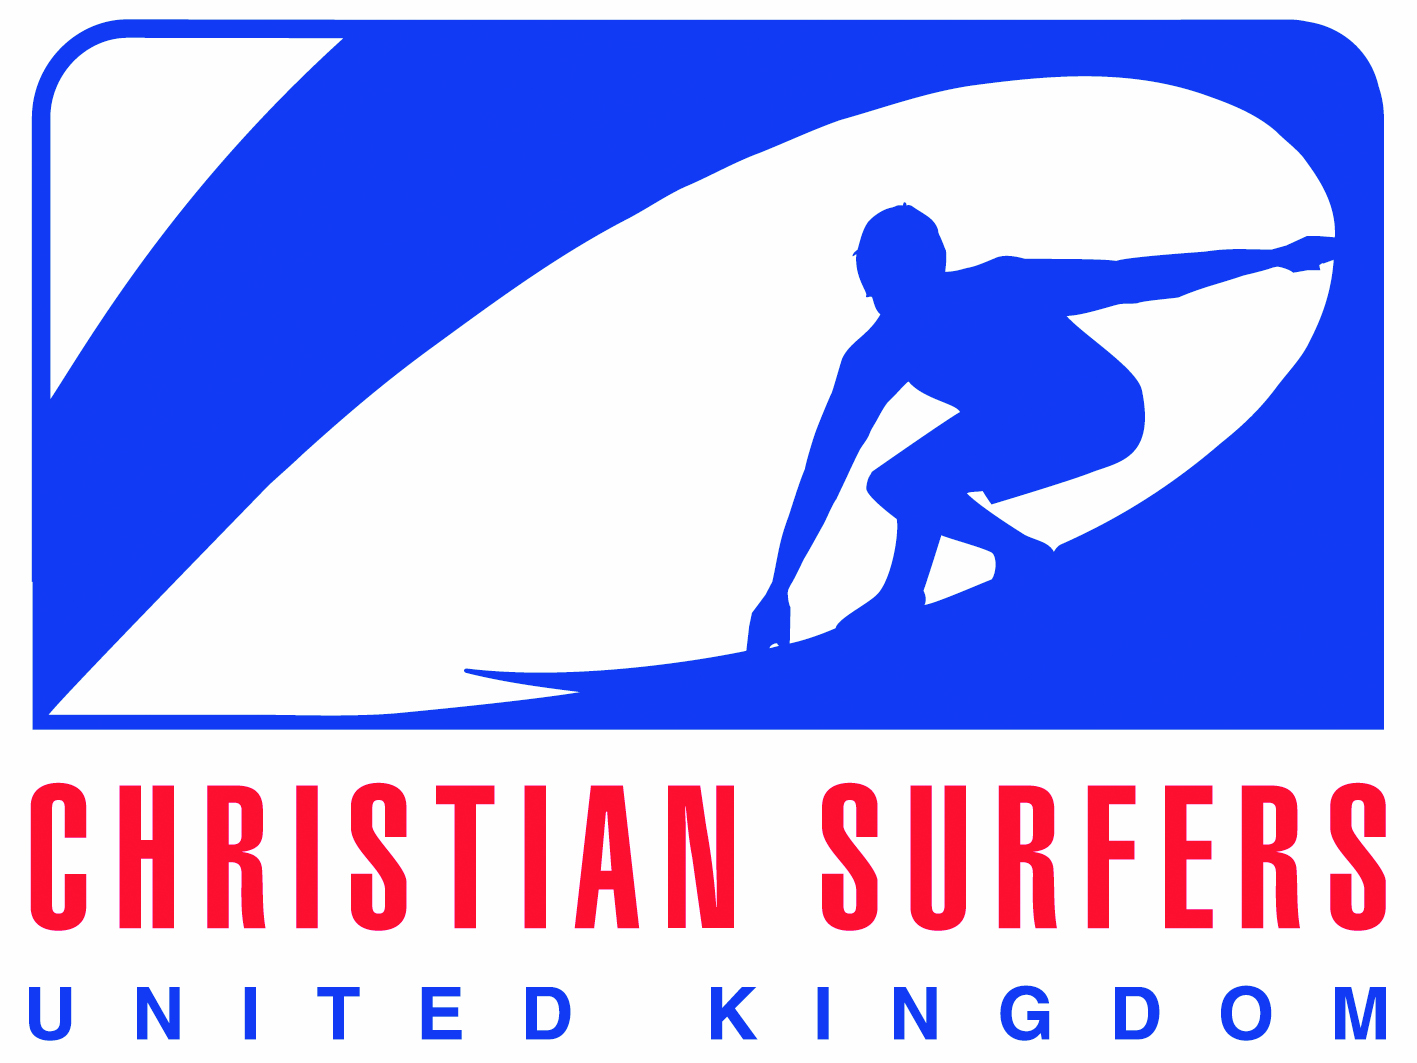 Christian Surfers UK